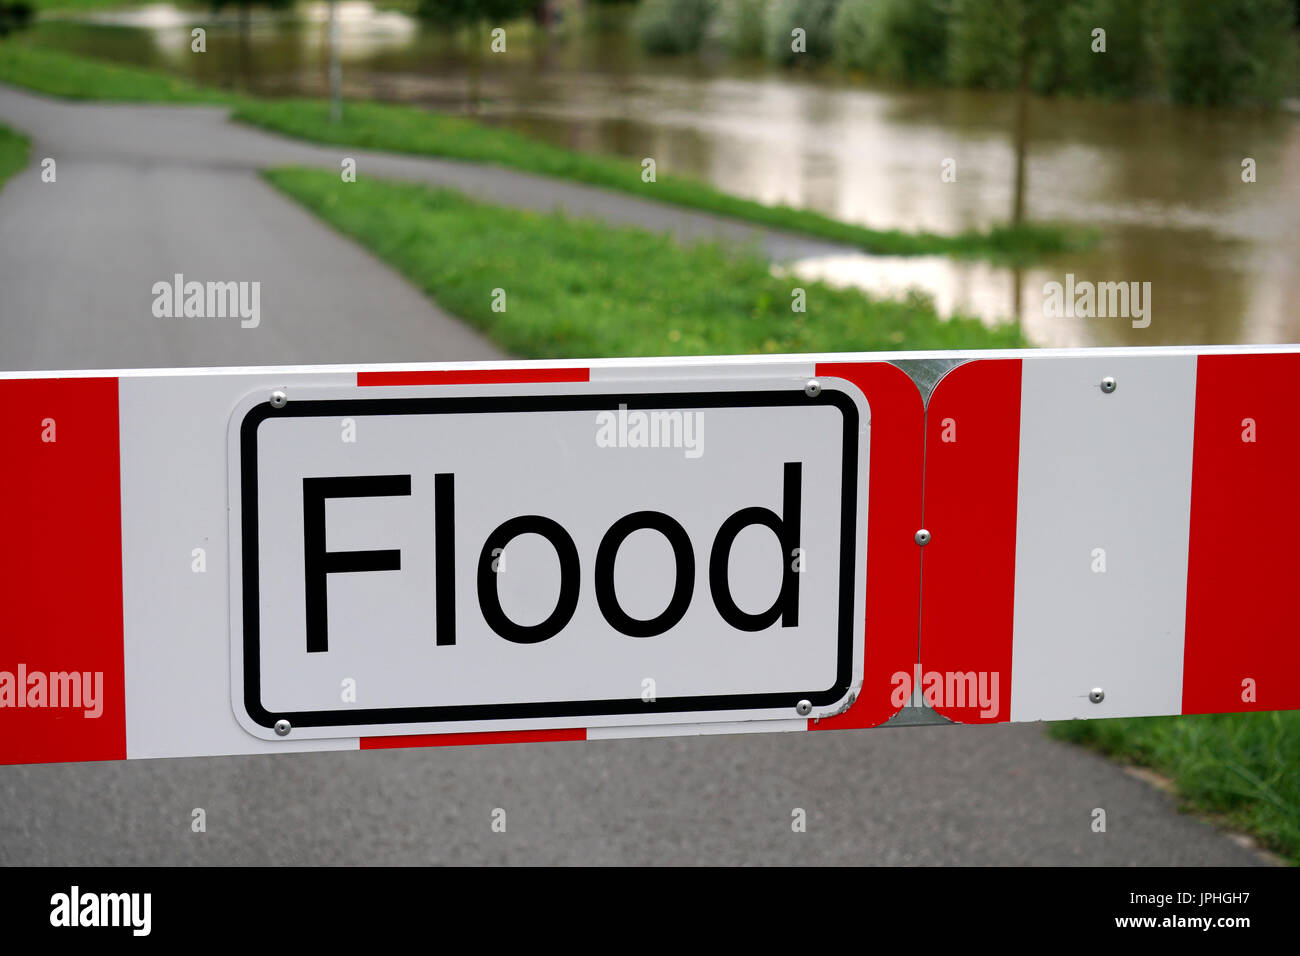 road blocked due to flood - Stock Image